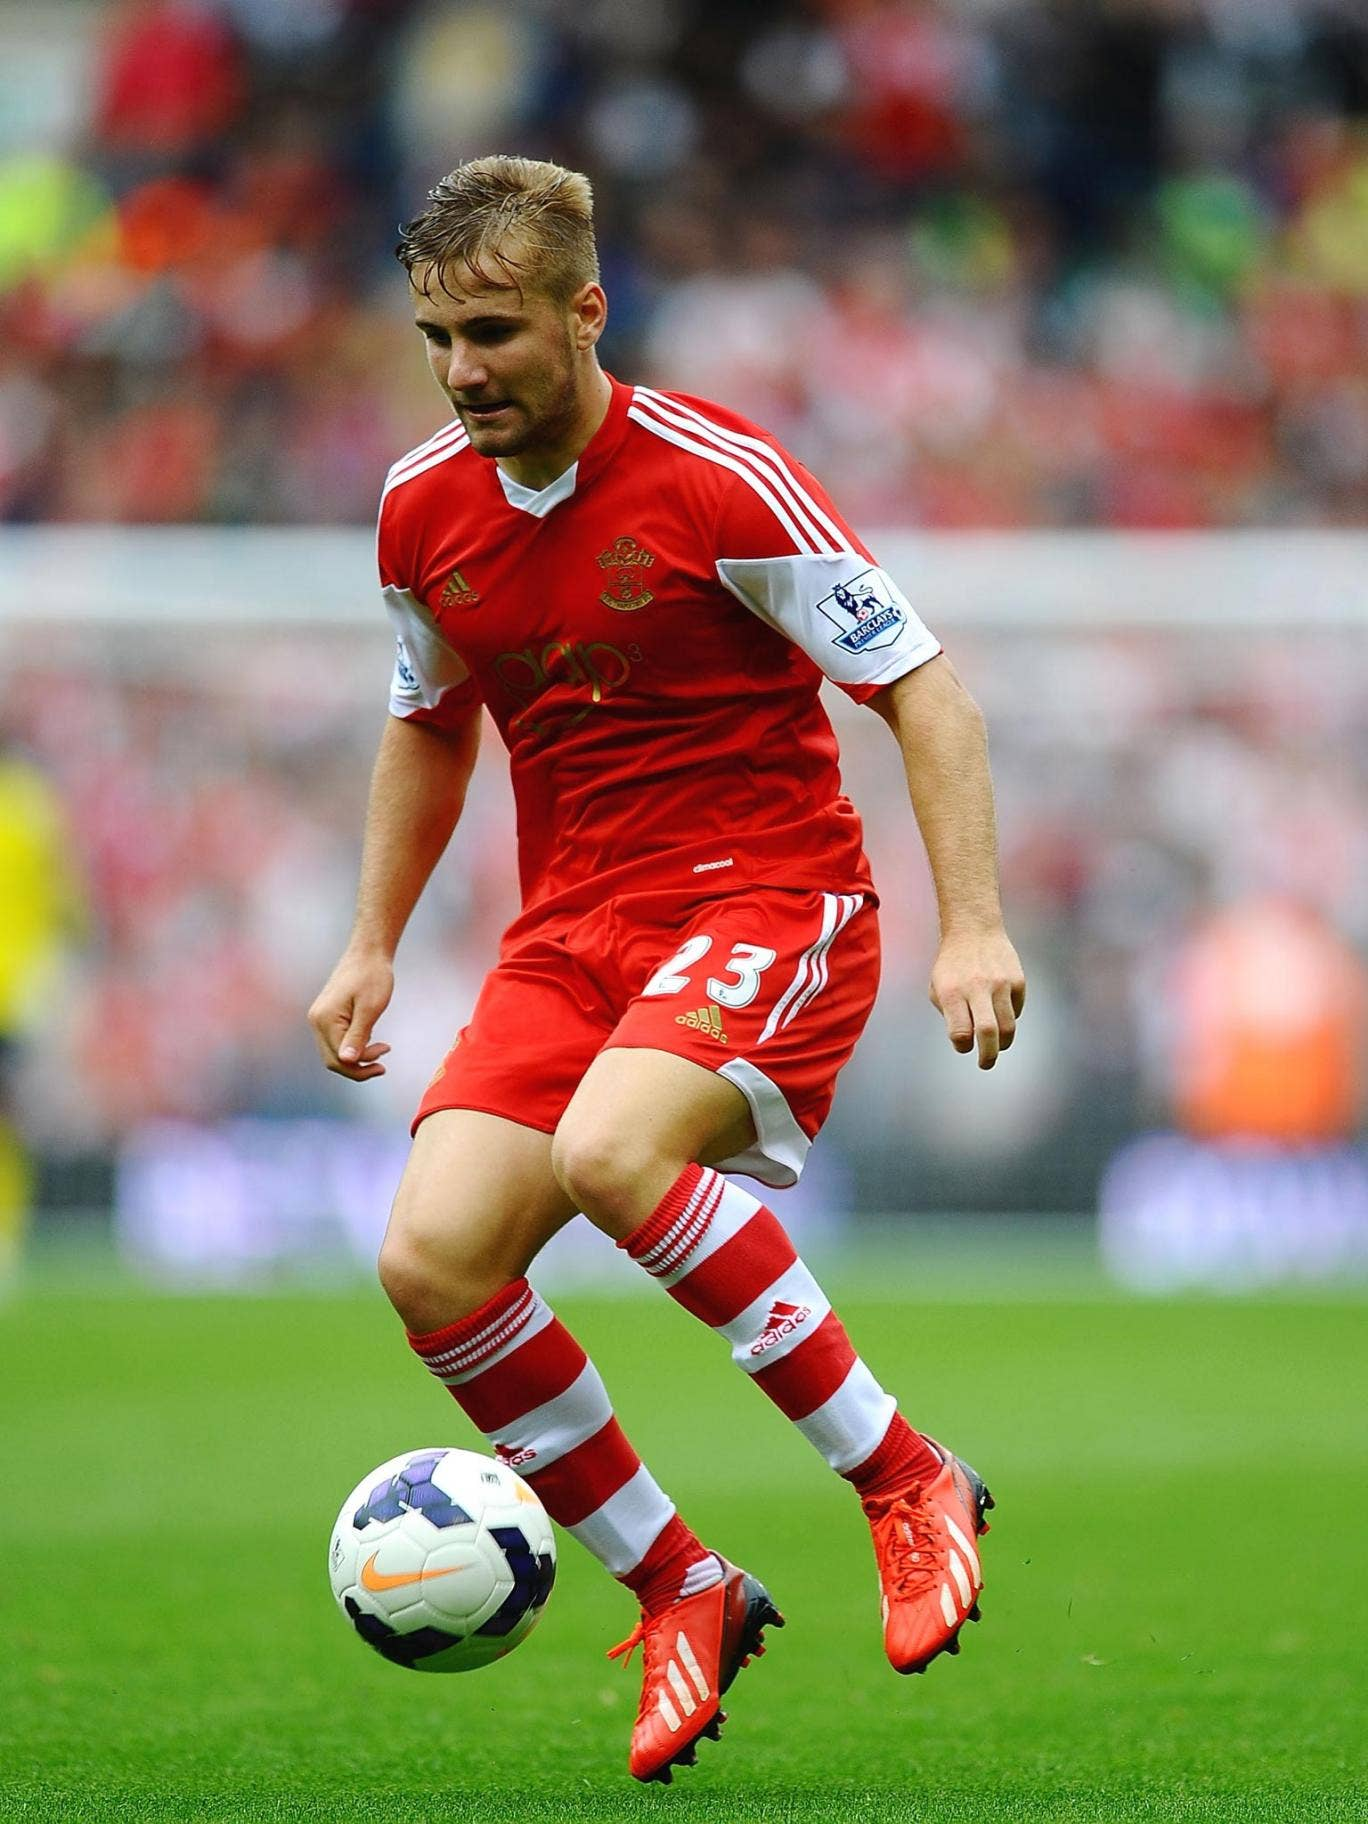 Southampton left-back Luke Shaw could make the England shirt his own in future and be partnered on the right flank by Nathaniel Clyne or Kyle Walker, both of whom I've worked with